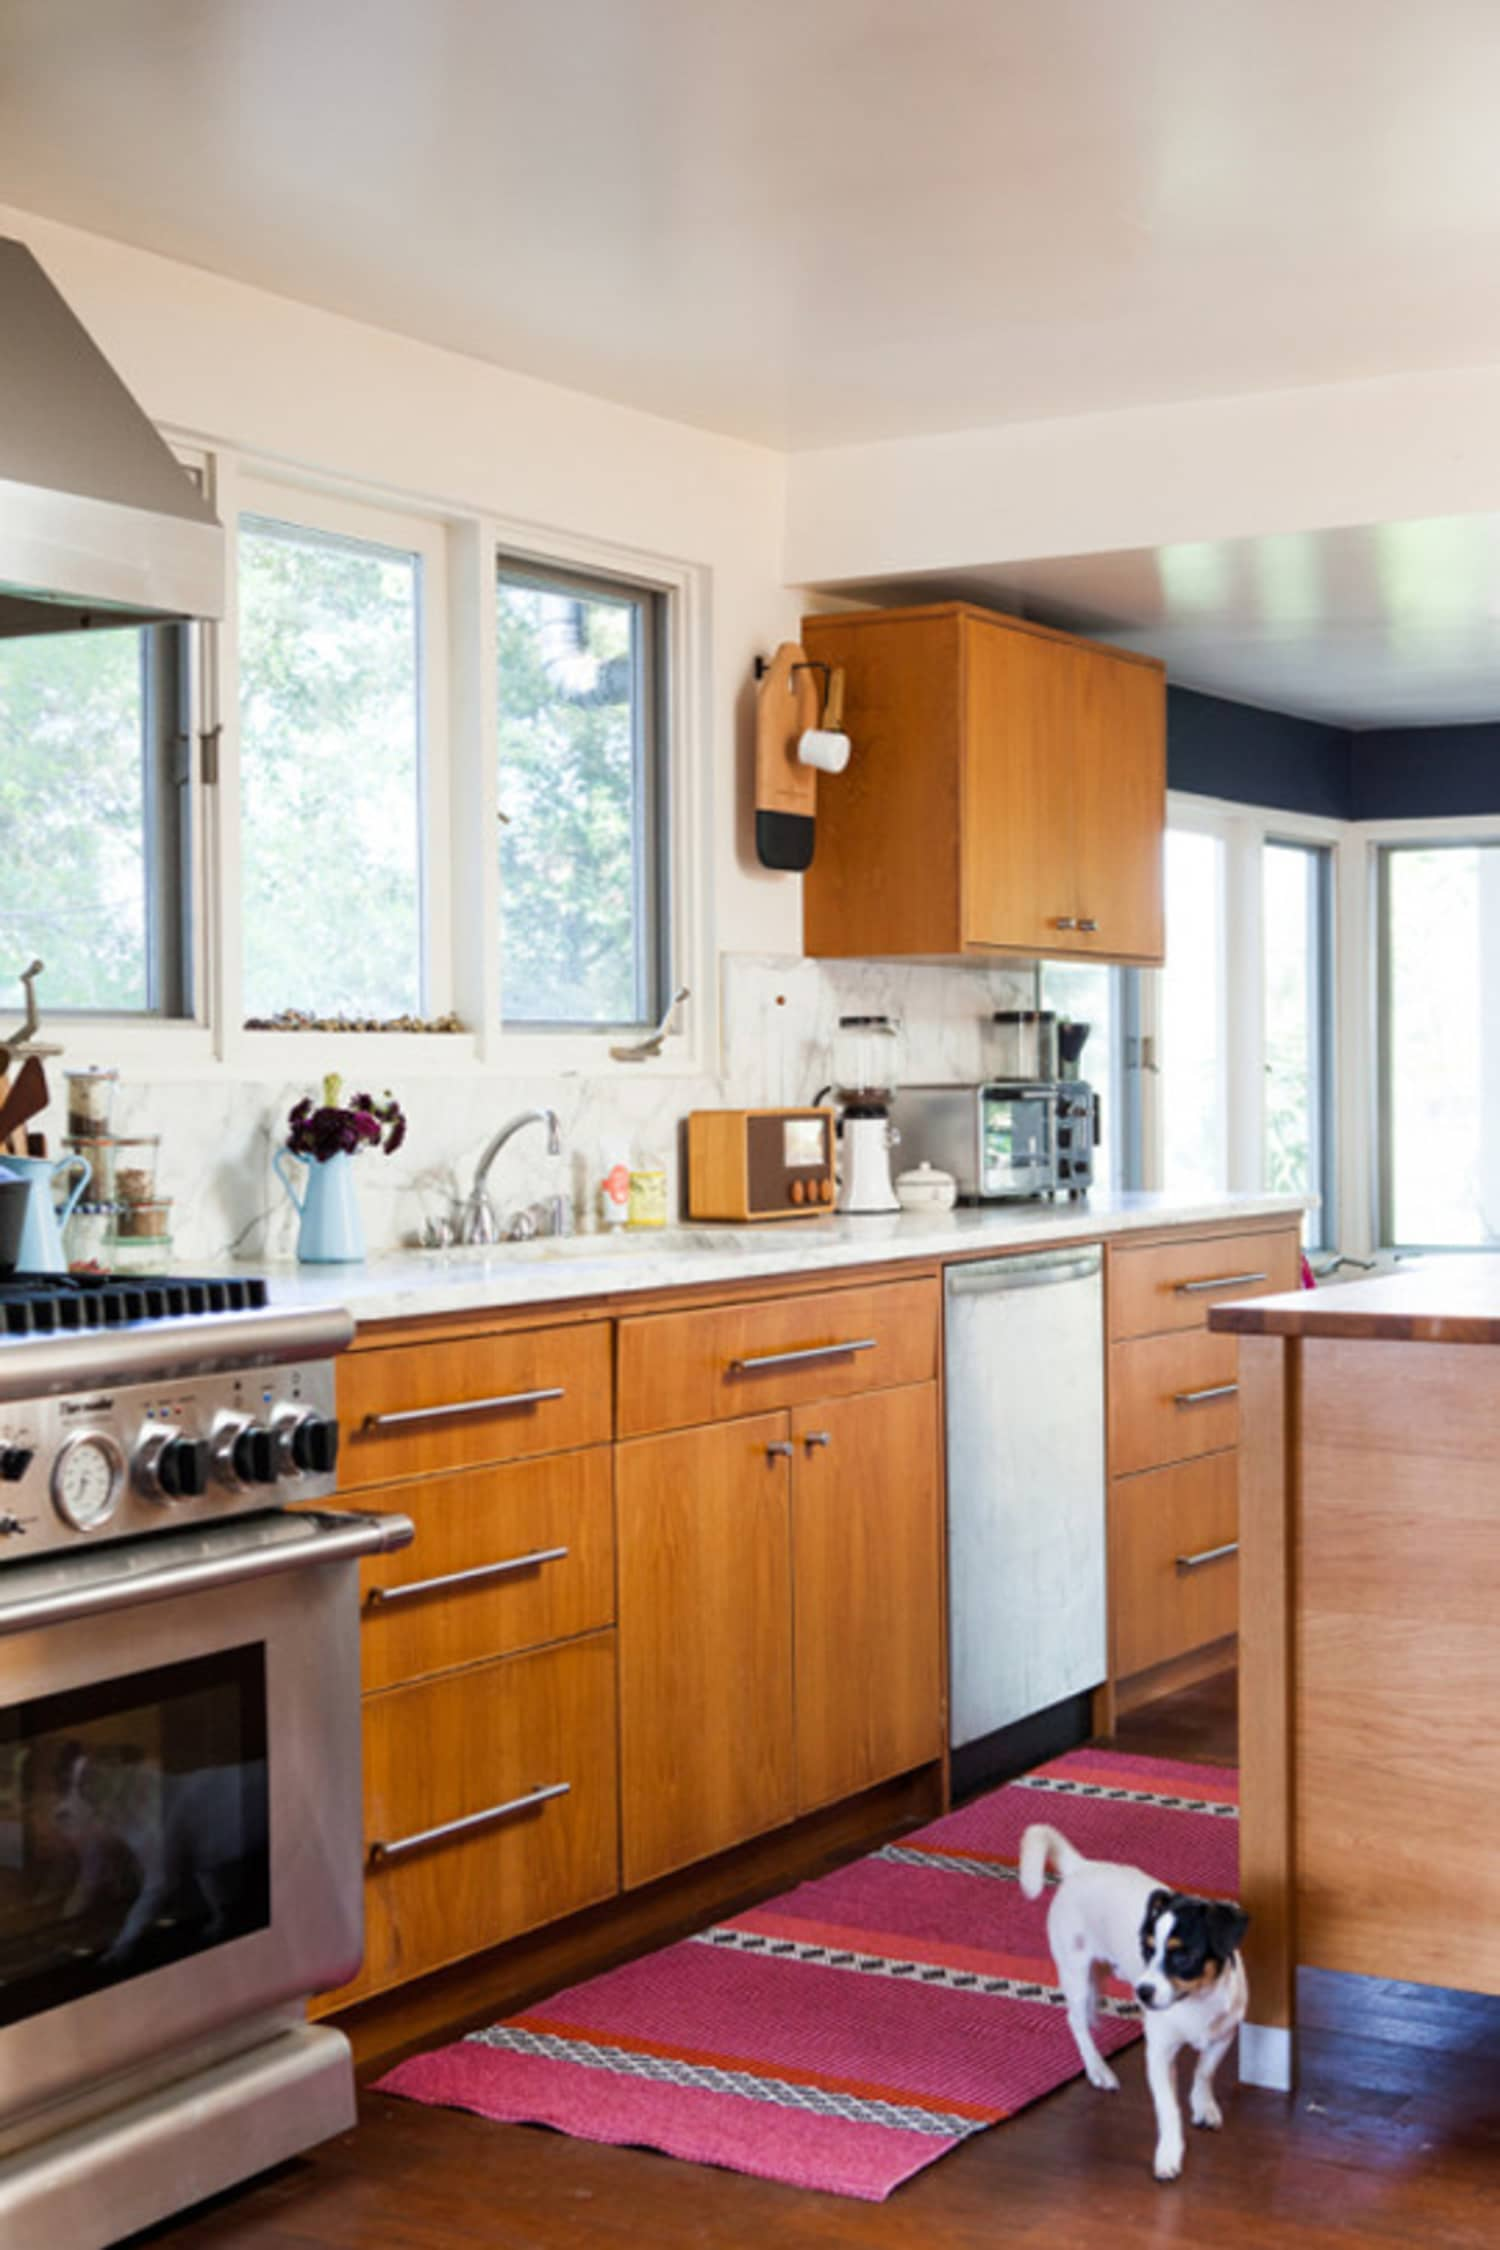 10 Easy, Low-Budget Ways to Improve Any Kitchen (Even a